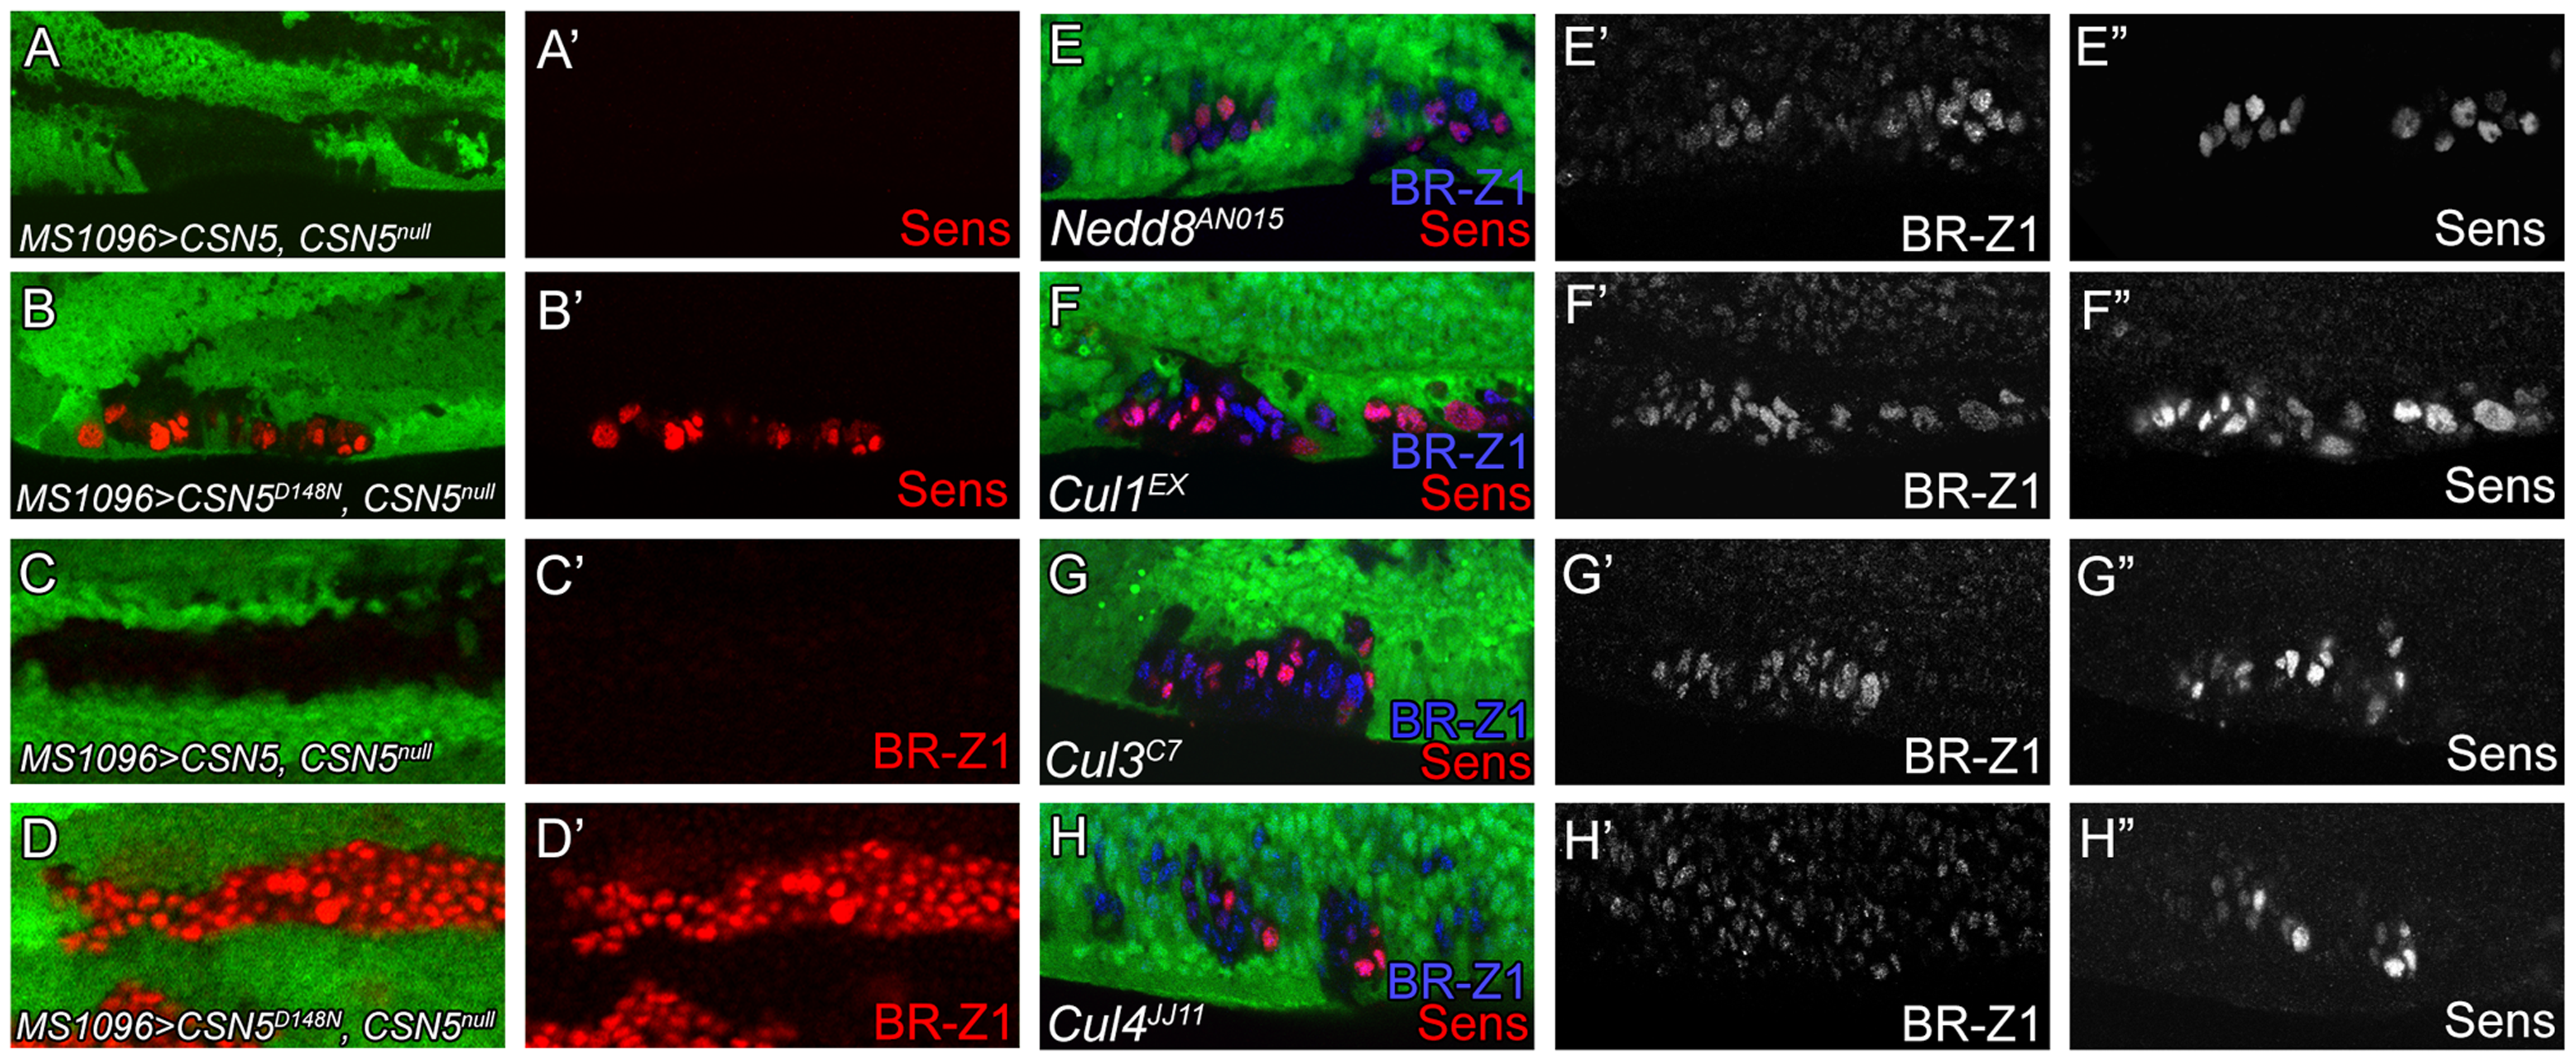 Deneddylation/neddylation and multiple cullins suppress BR-Z1 and Sens expressions at the PWM.